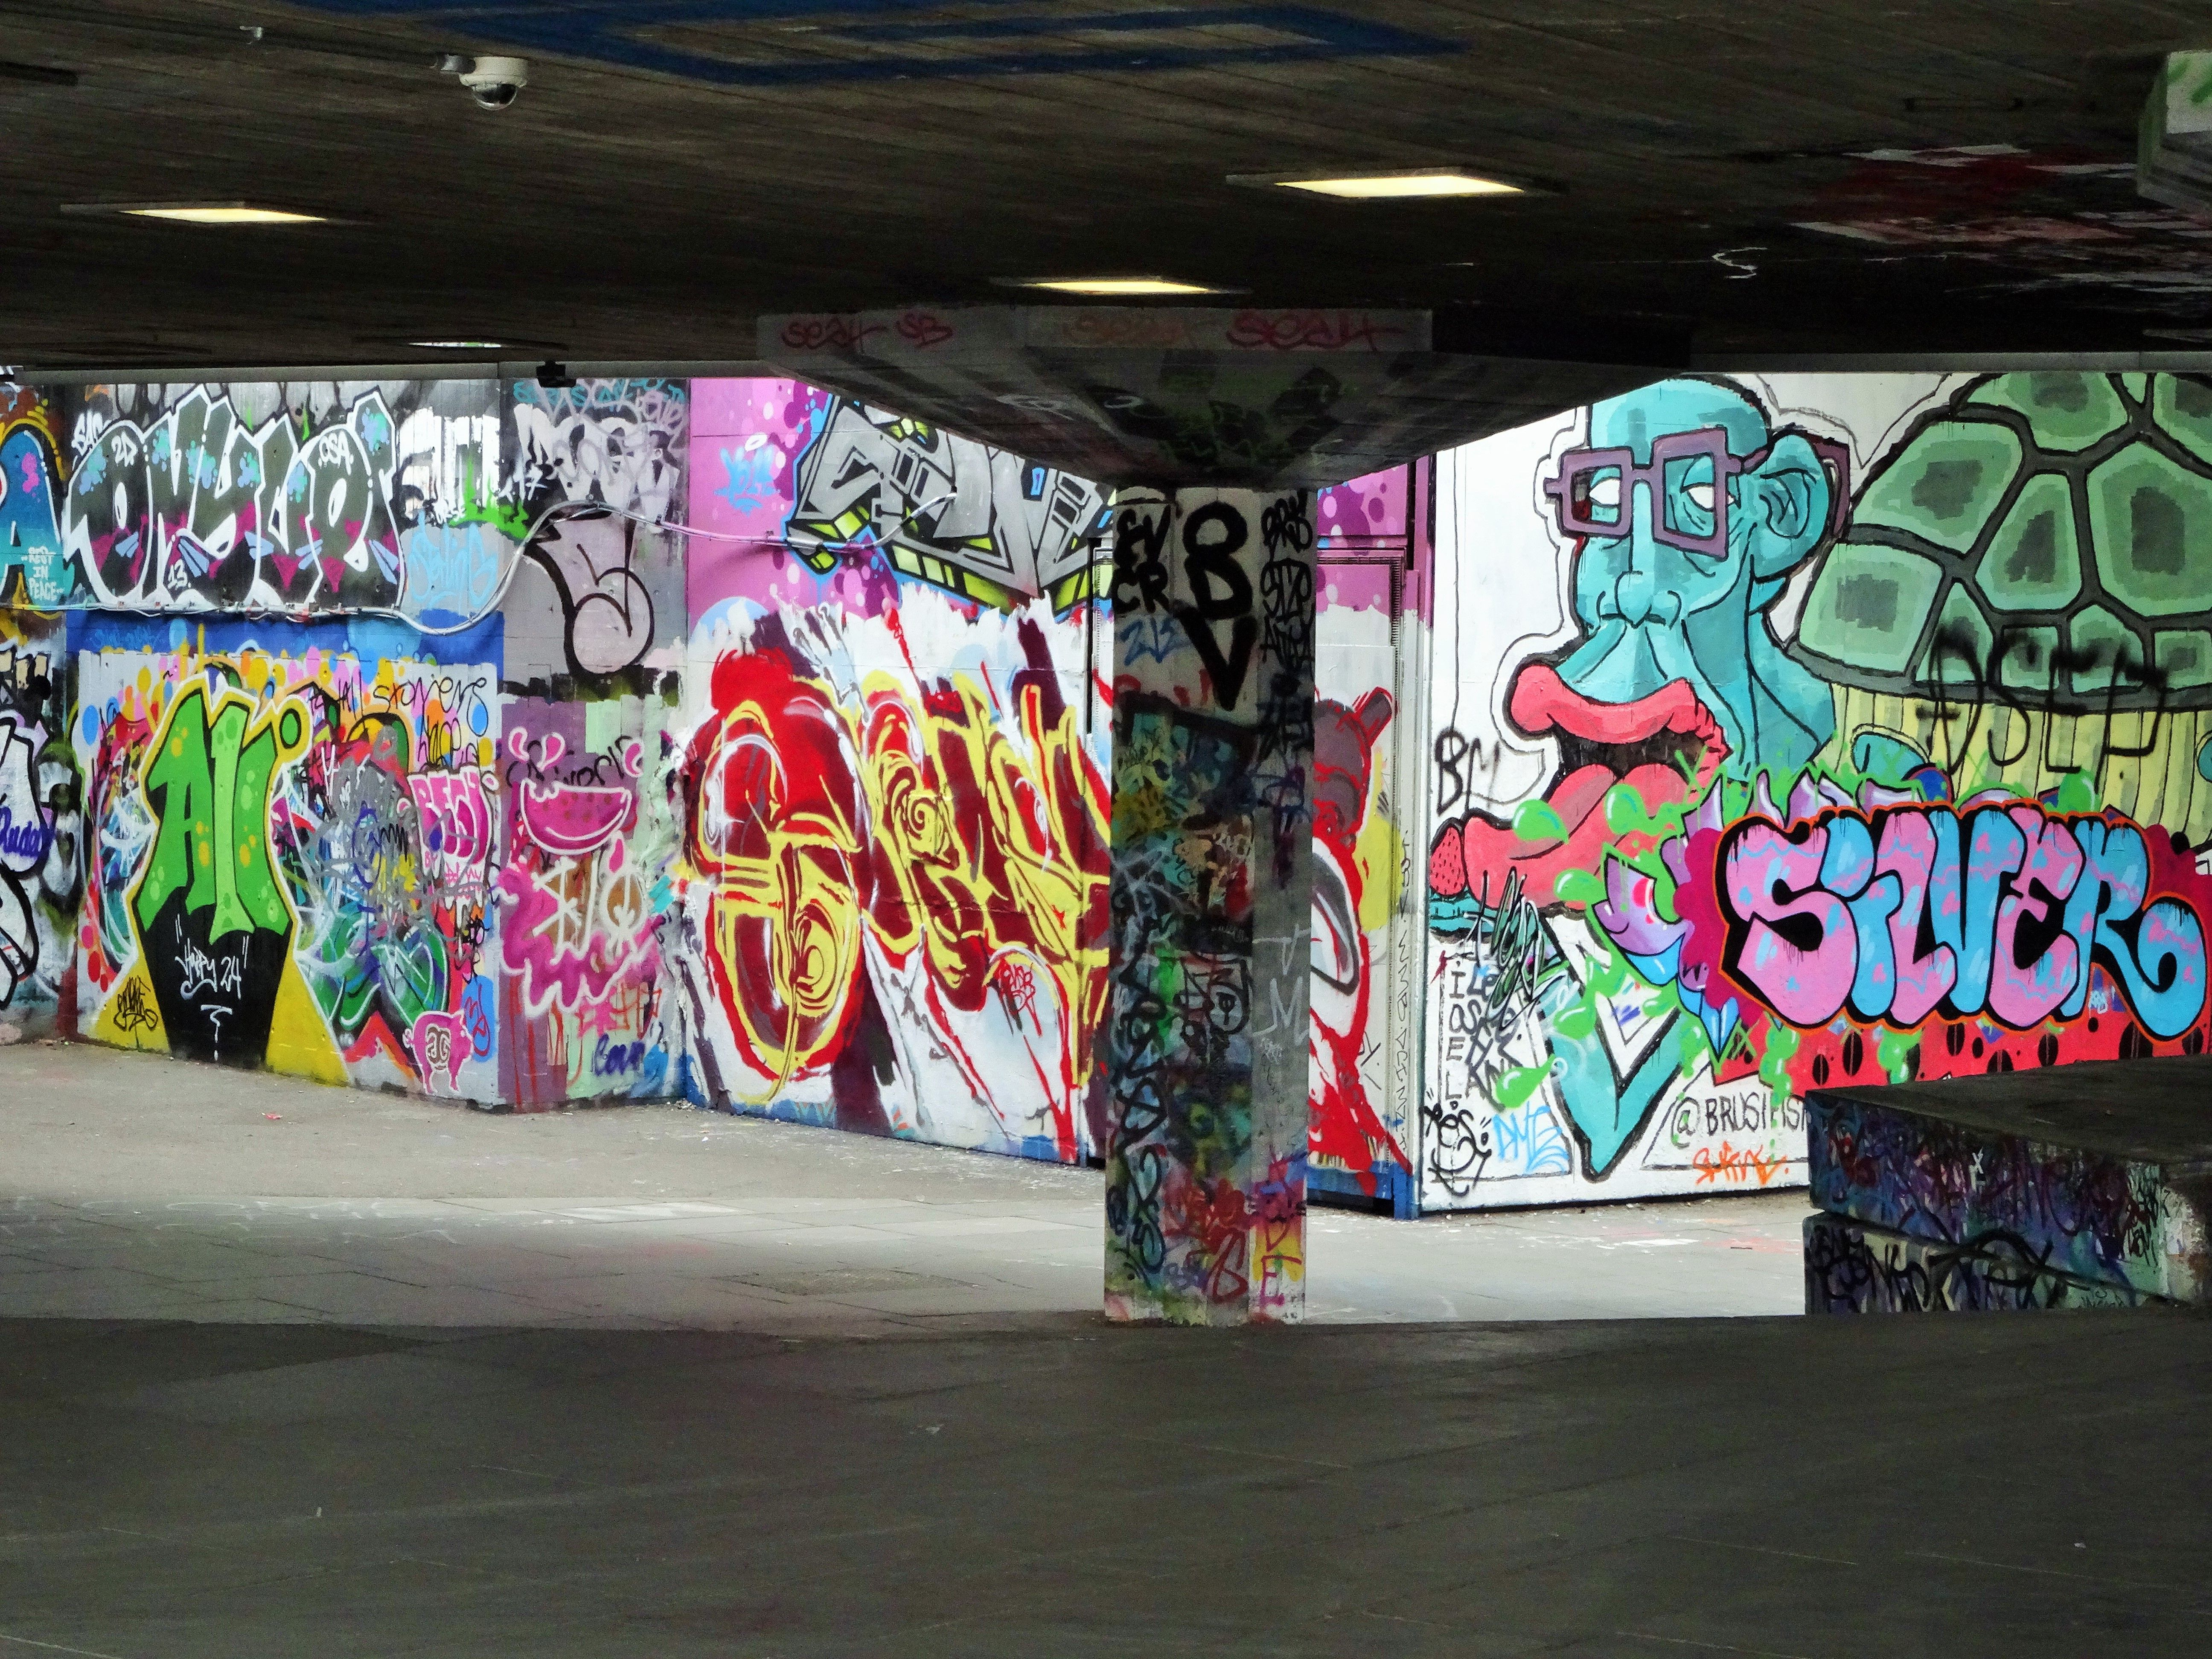 Skate park graffiti amazing places i have been pinterest skate skate park graffiti altavistaventures Choice Image